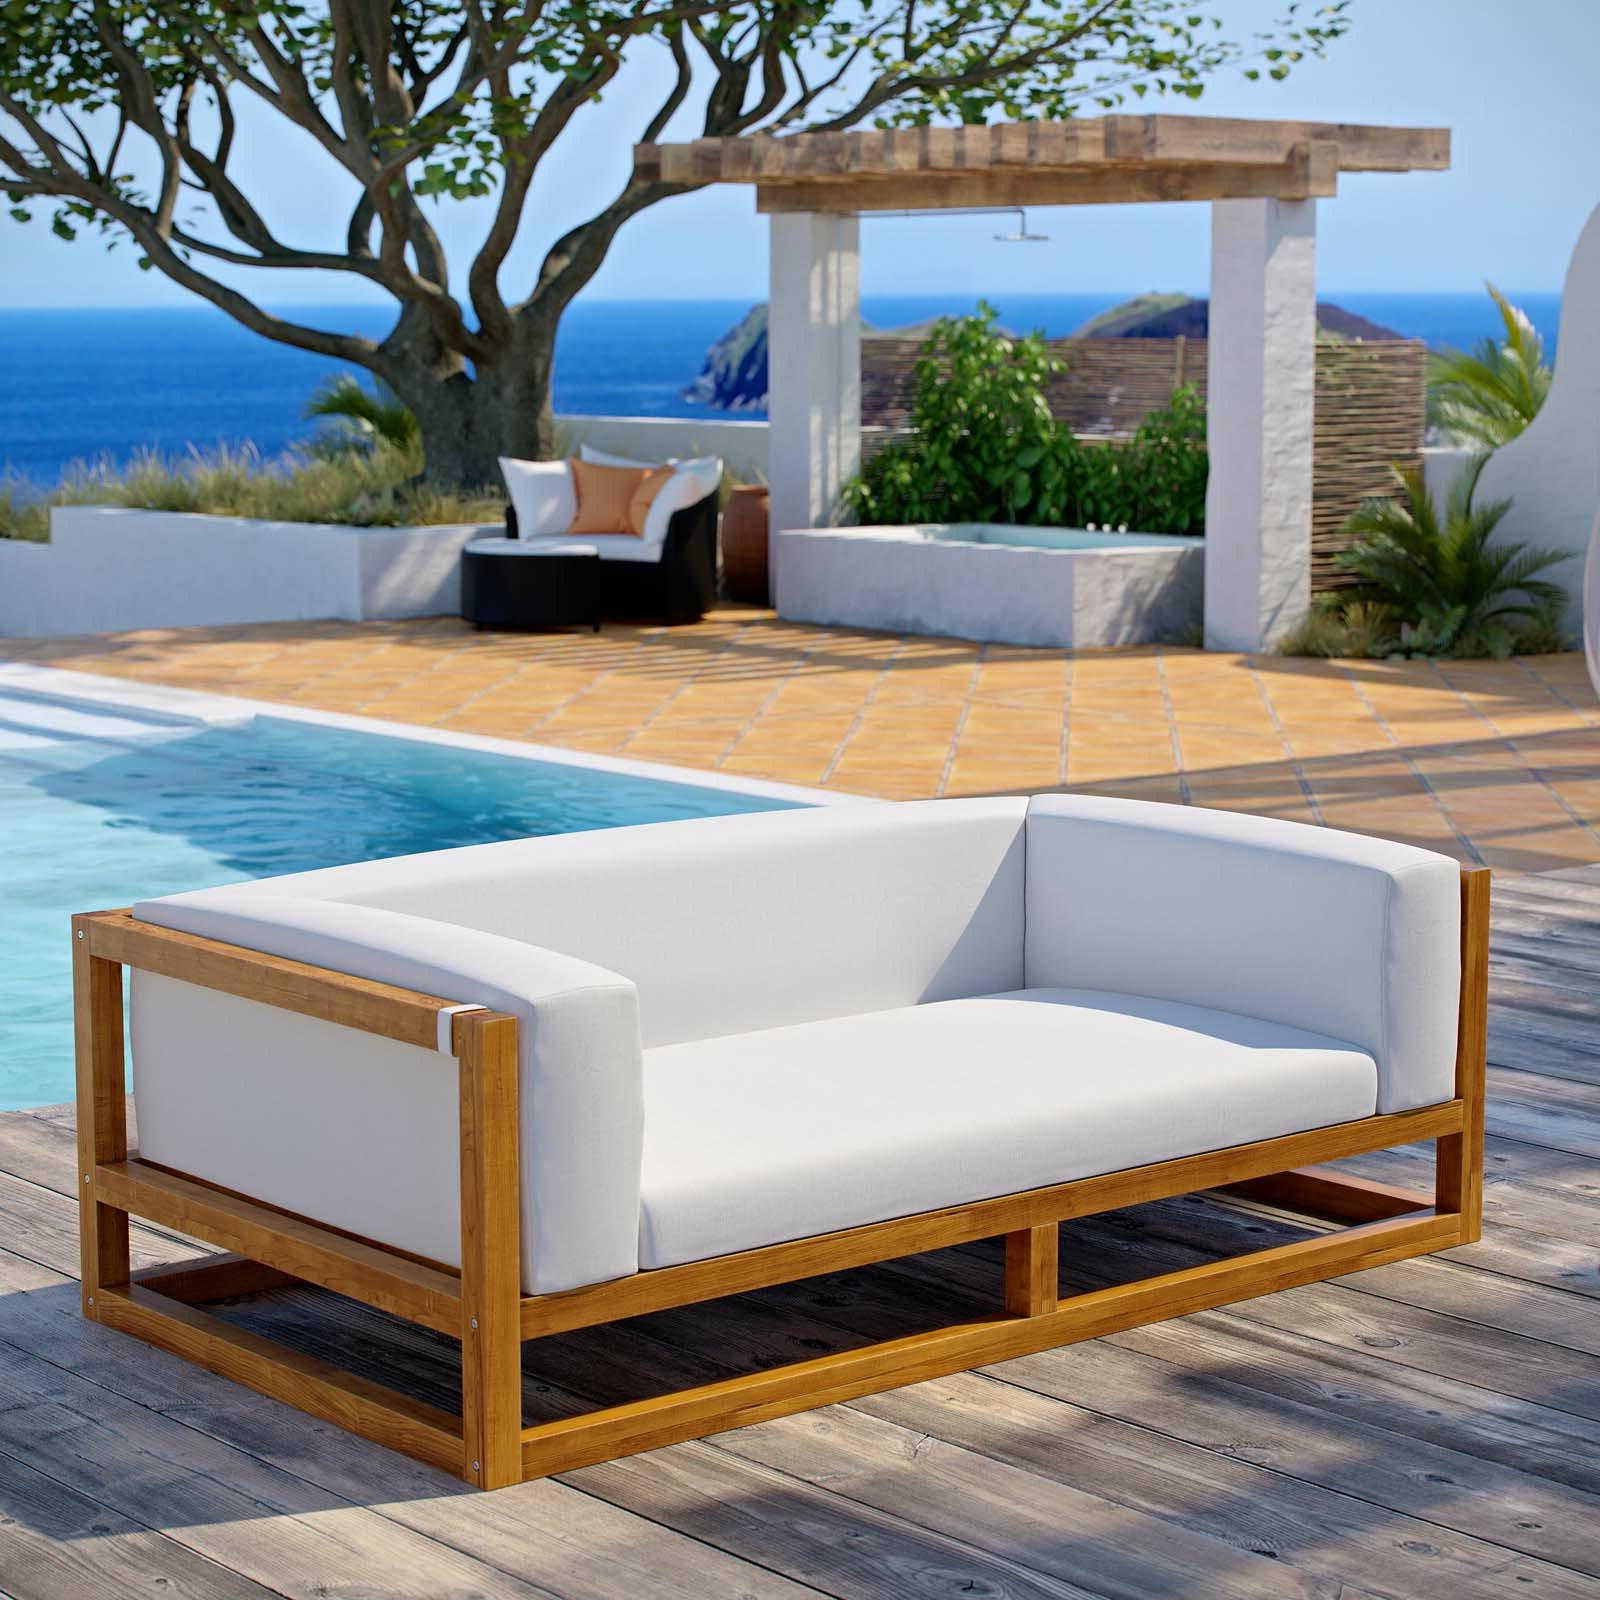 Ringler Premium Grade A Teak Patio Sofa With Cushions Intended For Widely Used Ellanti Teak Patio Daybeds With Cushions (View 17 of 20)